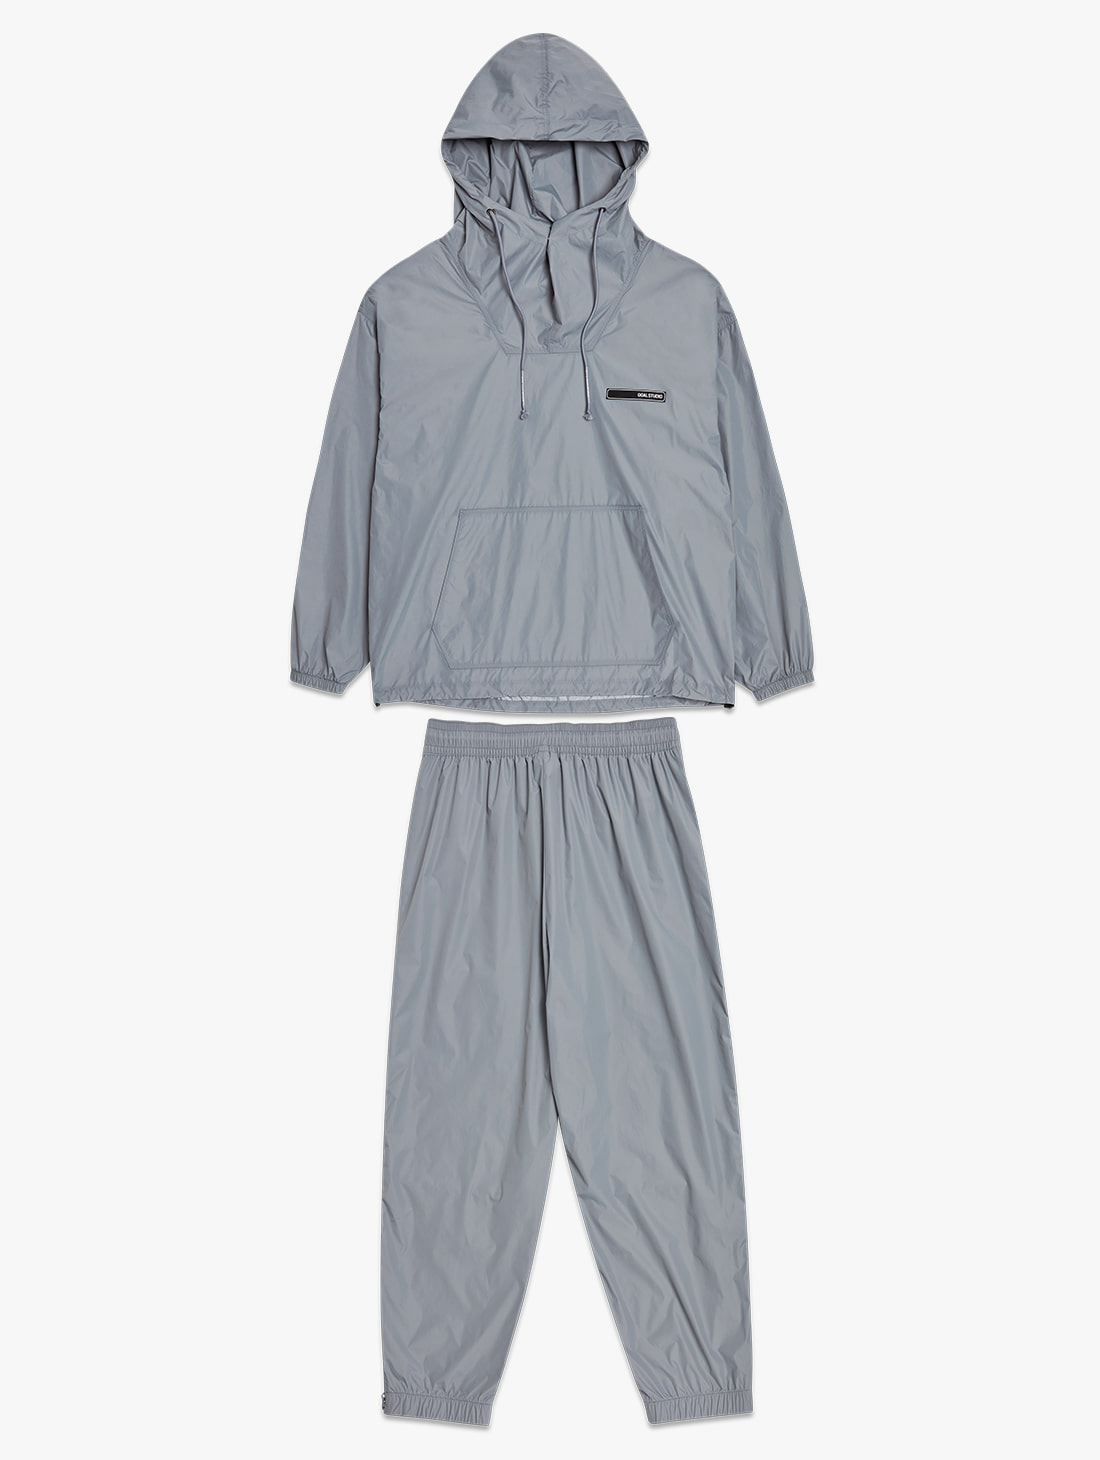 GOALSTUDIO [10% OFF] OVERSIZED ANORAK JACKET&VENTILATED WARMUP PANTS SET